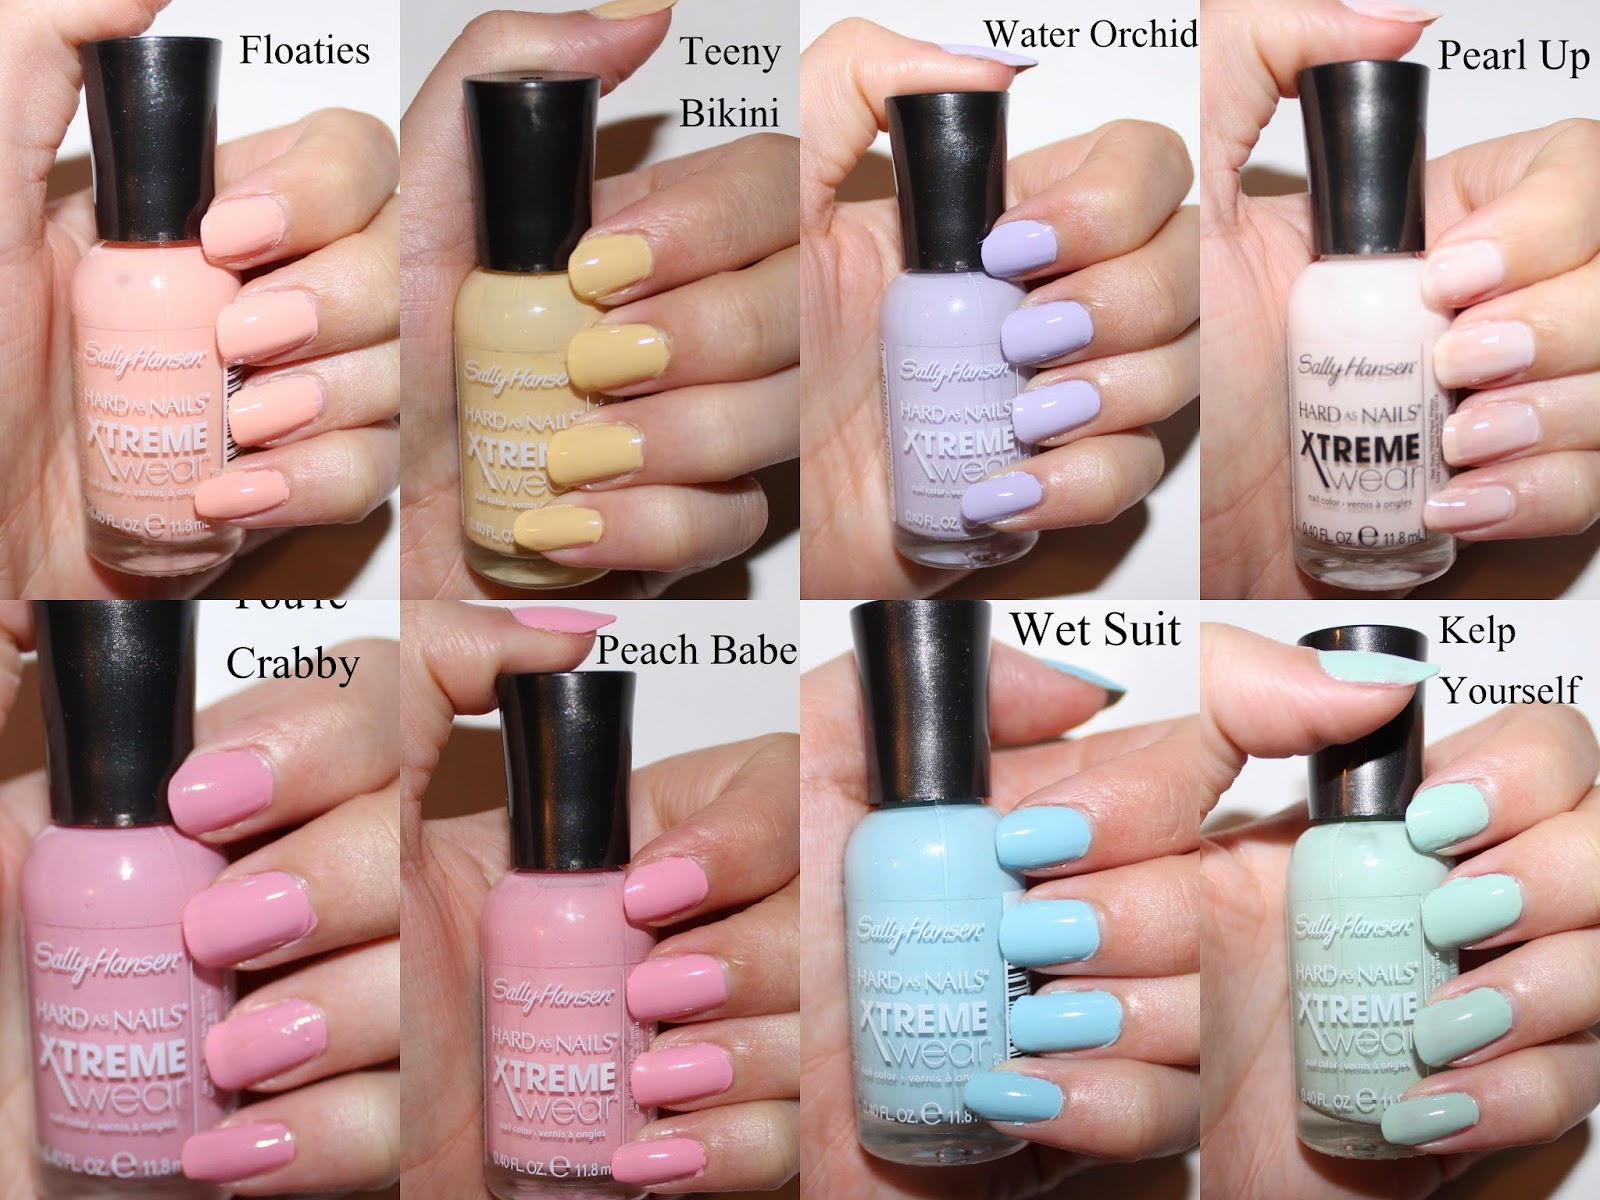 Sally Hansen Xtreme Wear Sea Bloom Collection Swatches